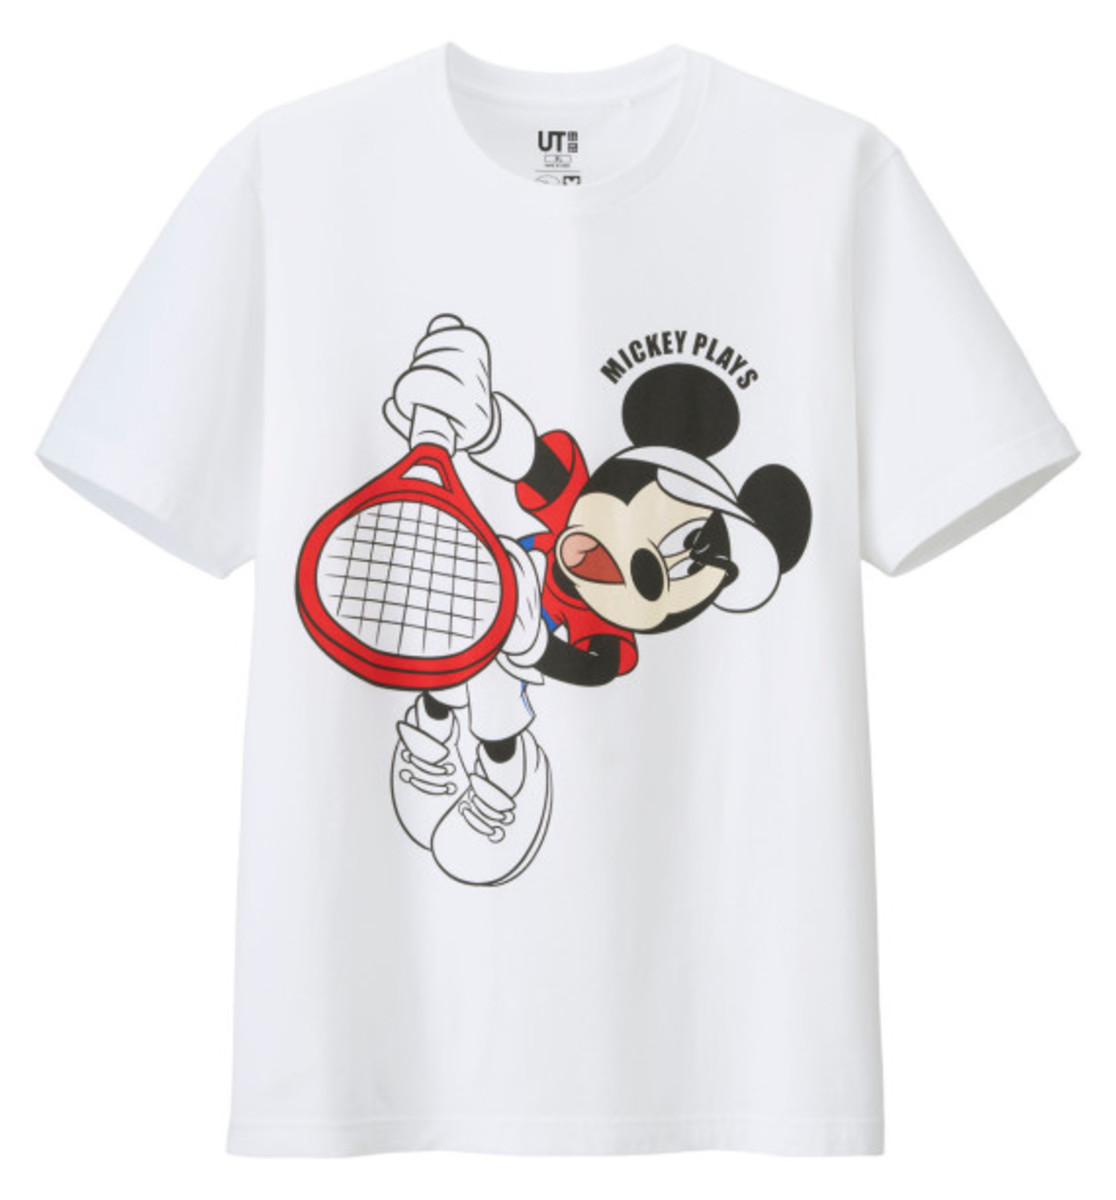 disney-uniqlo-mickey-plays-t-shirt-collection-01